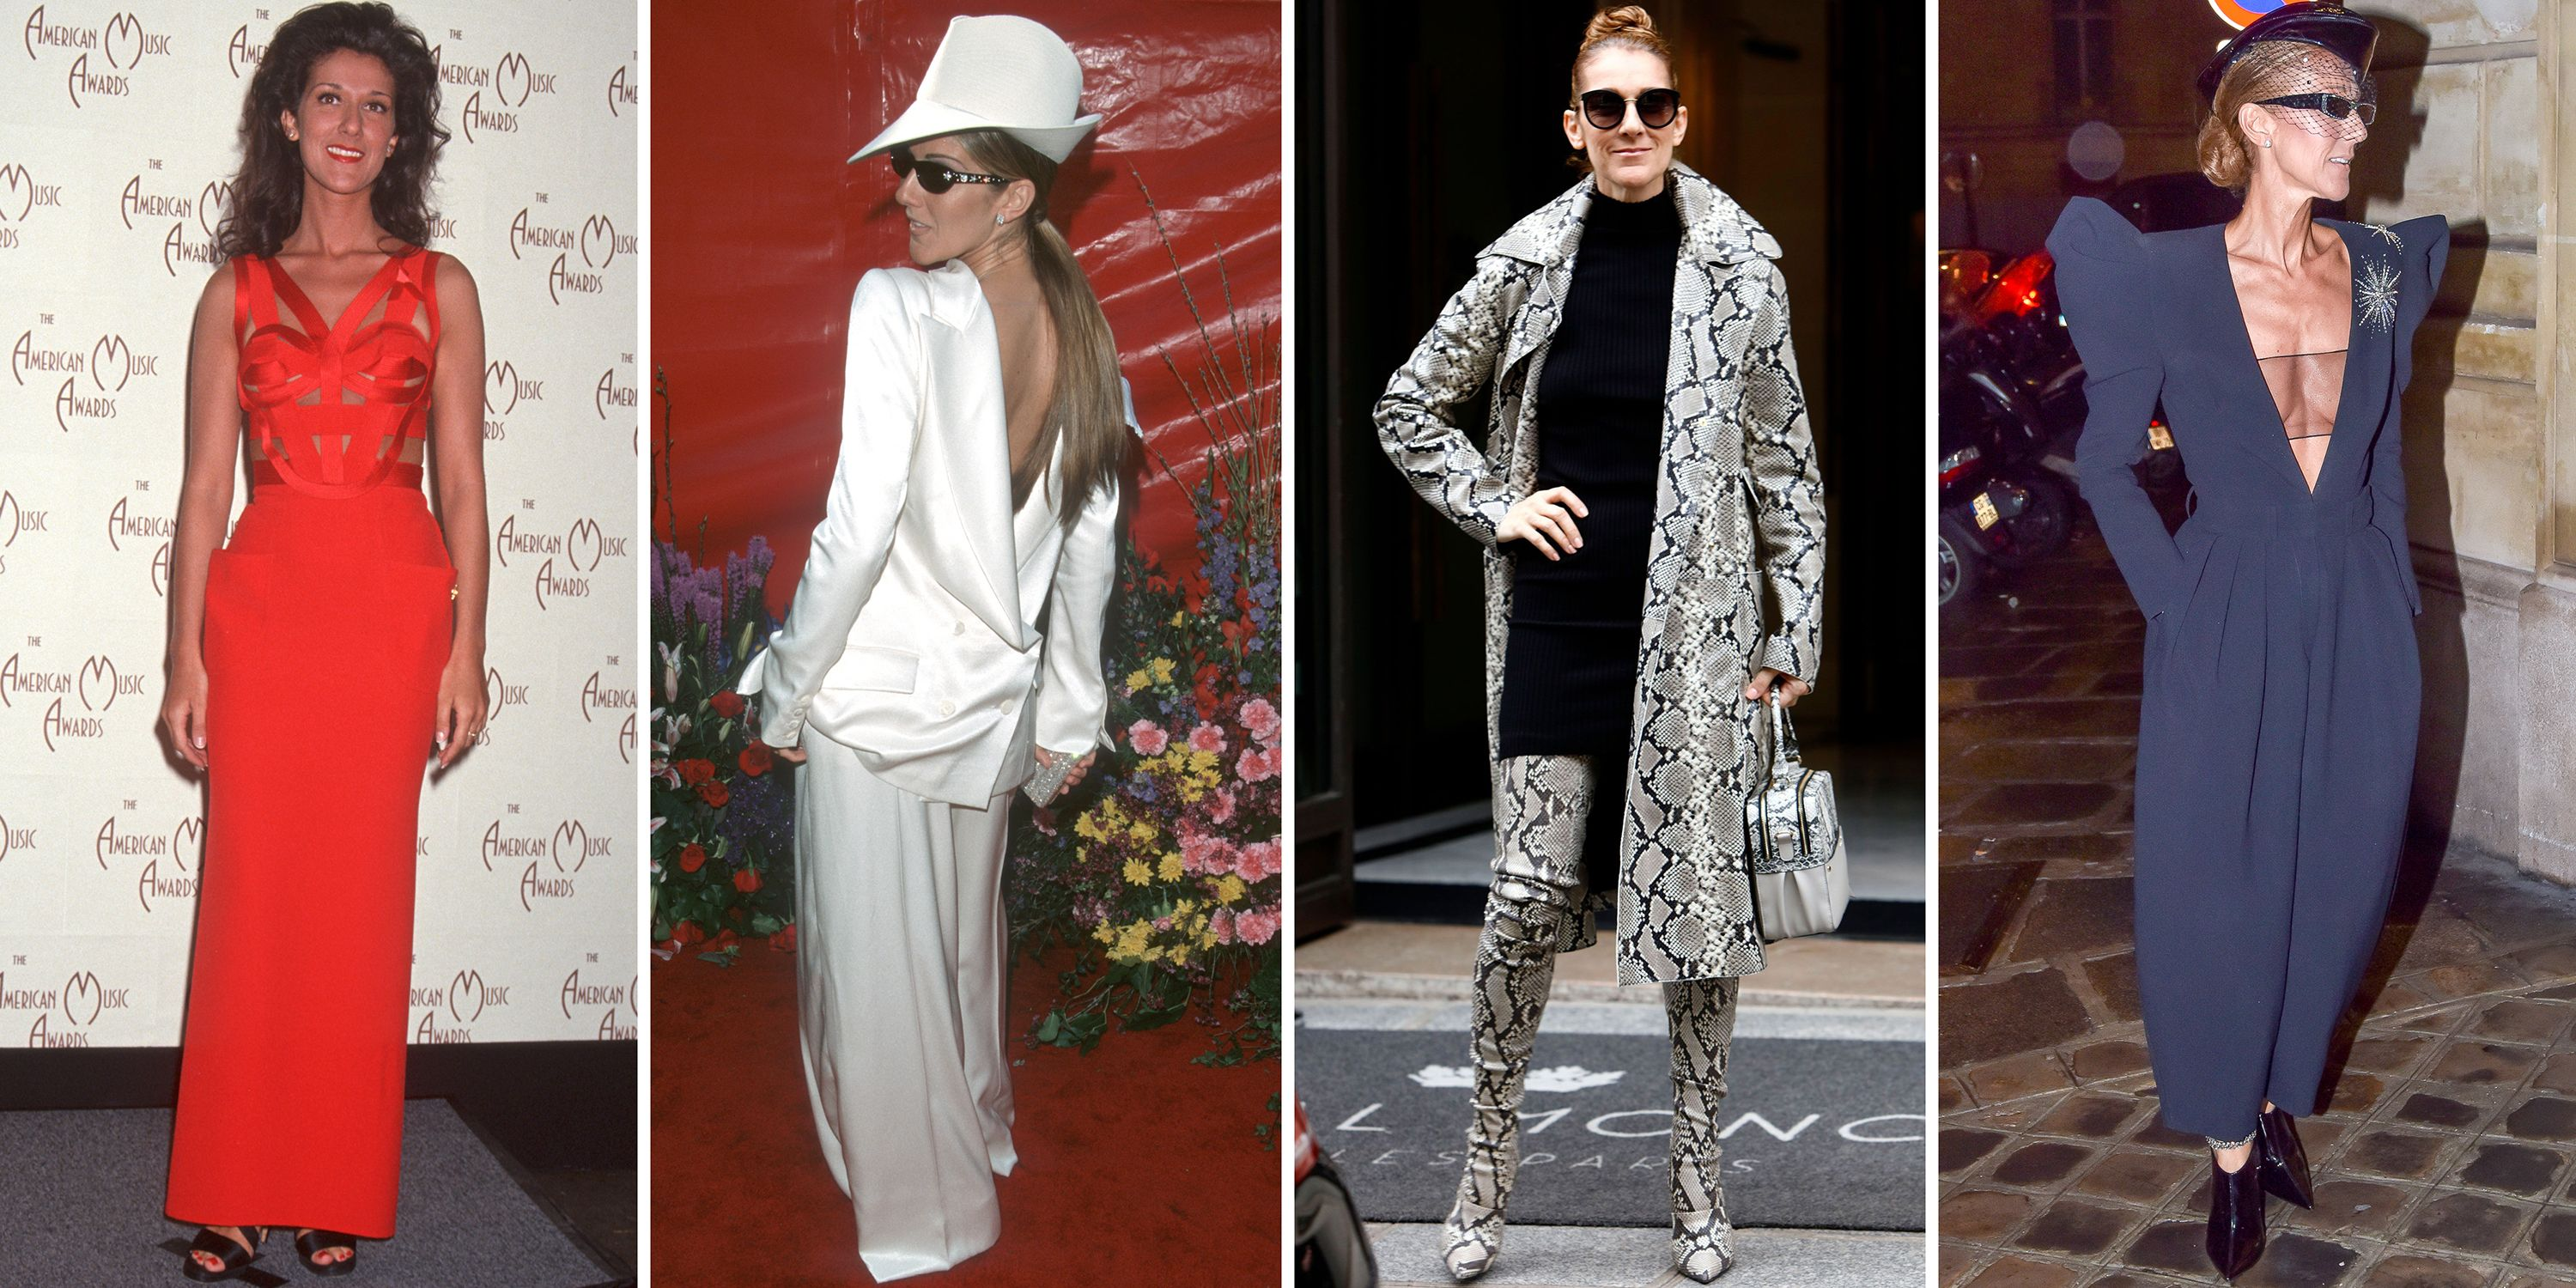 e19e0be99 50 Best Celine Dion Outfits and Fashion - Celine Dion's Most ...